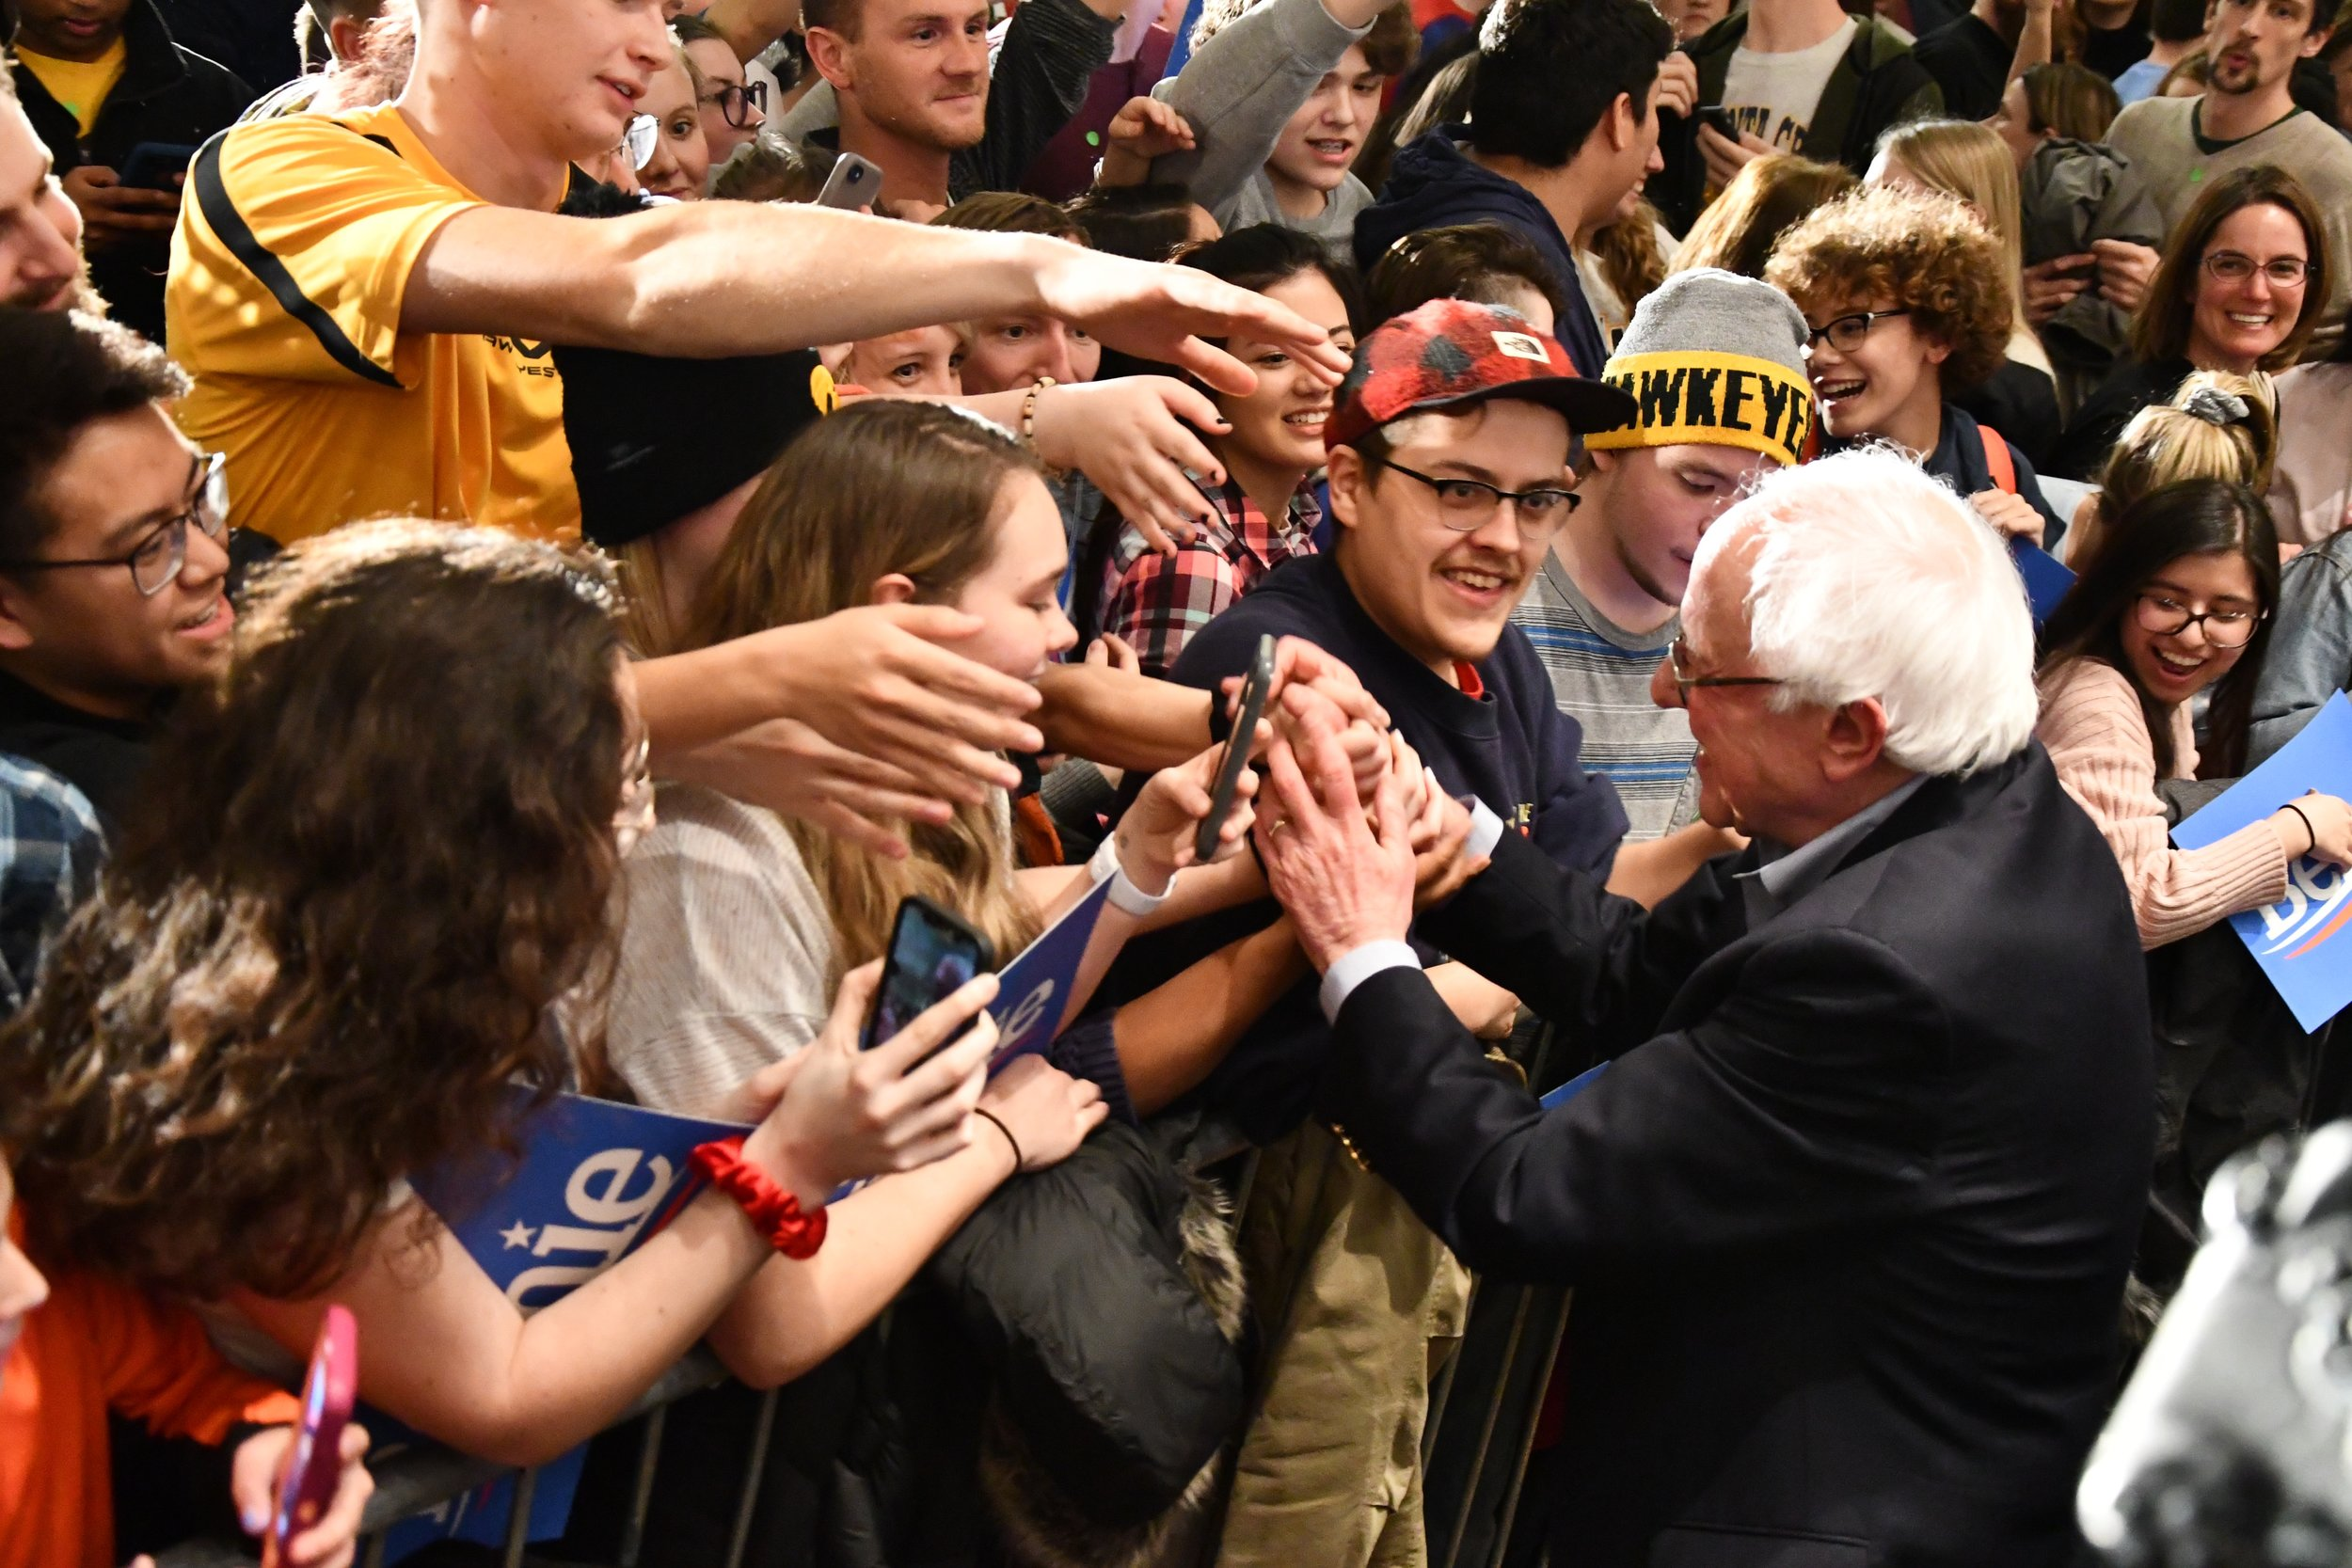 Senator Sanders shakes hands with his supporters. This will be Sanders' second time running for President.  Photo by Olivia Harter